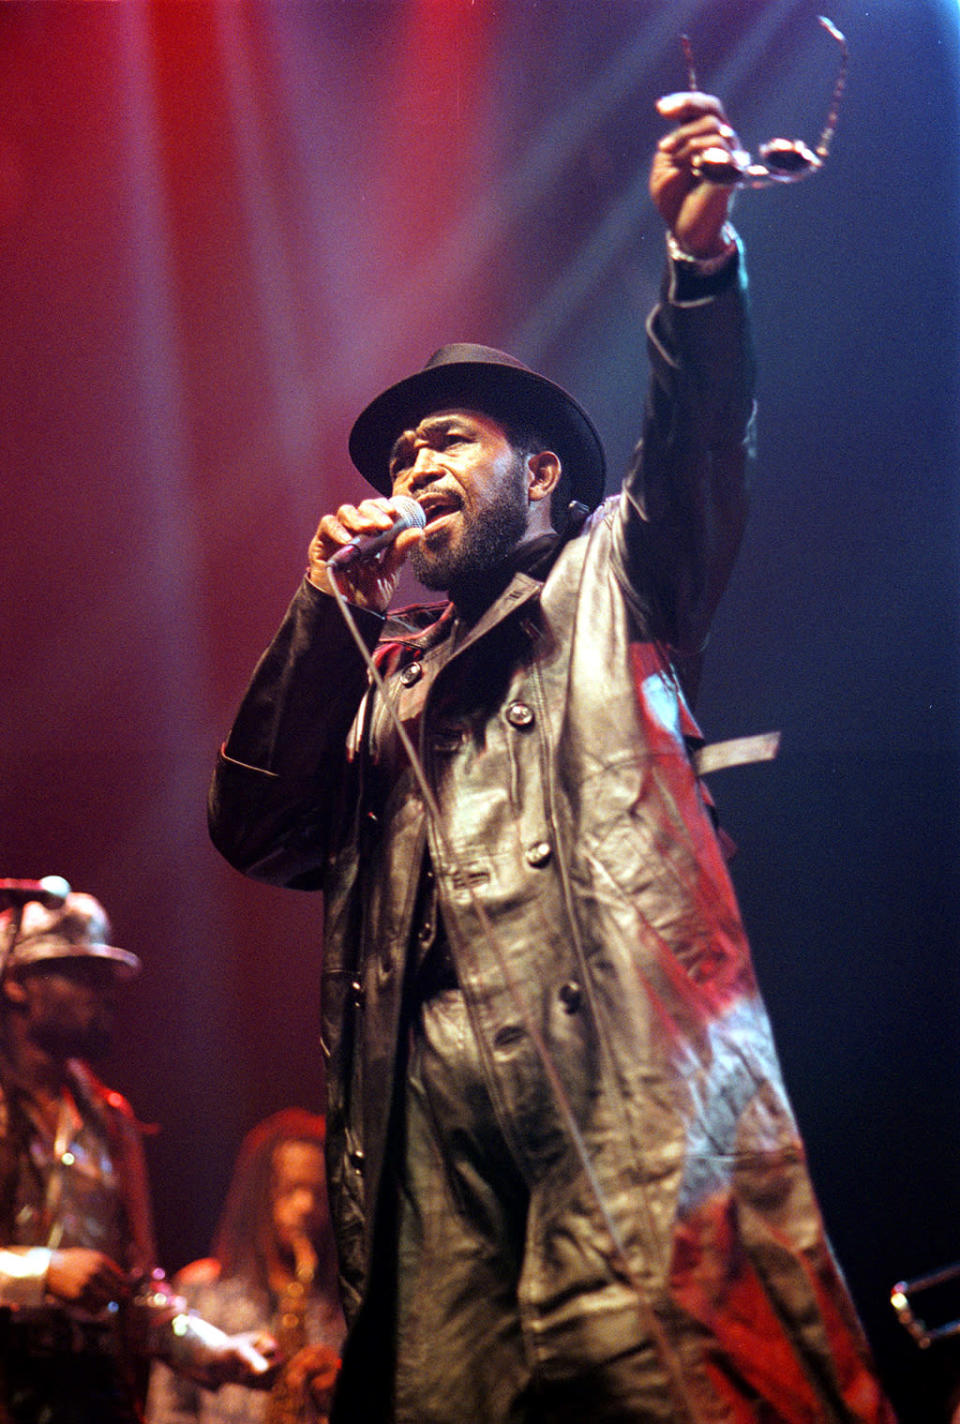 Prince Buster was a Jamaican musician who pioneered ska music in the 1960s and inspired Britain's second wave of ska in the 1980s. He has long been regarded as one of the most important figures in the history of ska and rocksteady music. He died Sept. 8 after a history of heart problems and strokes. He was 78. (Photo: Frans Schellekens/Redferns)